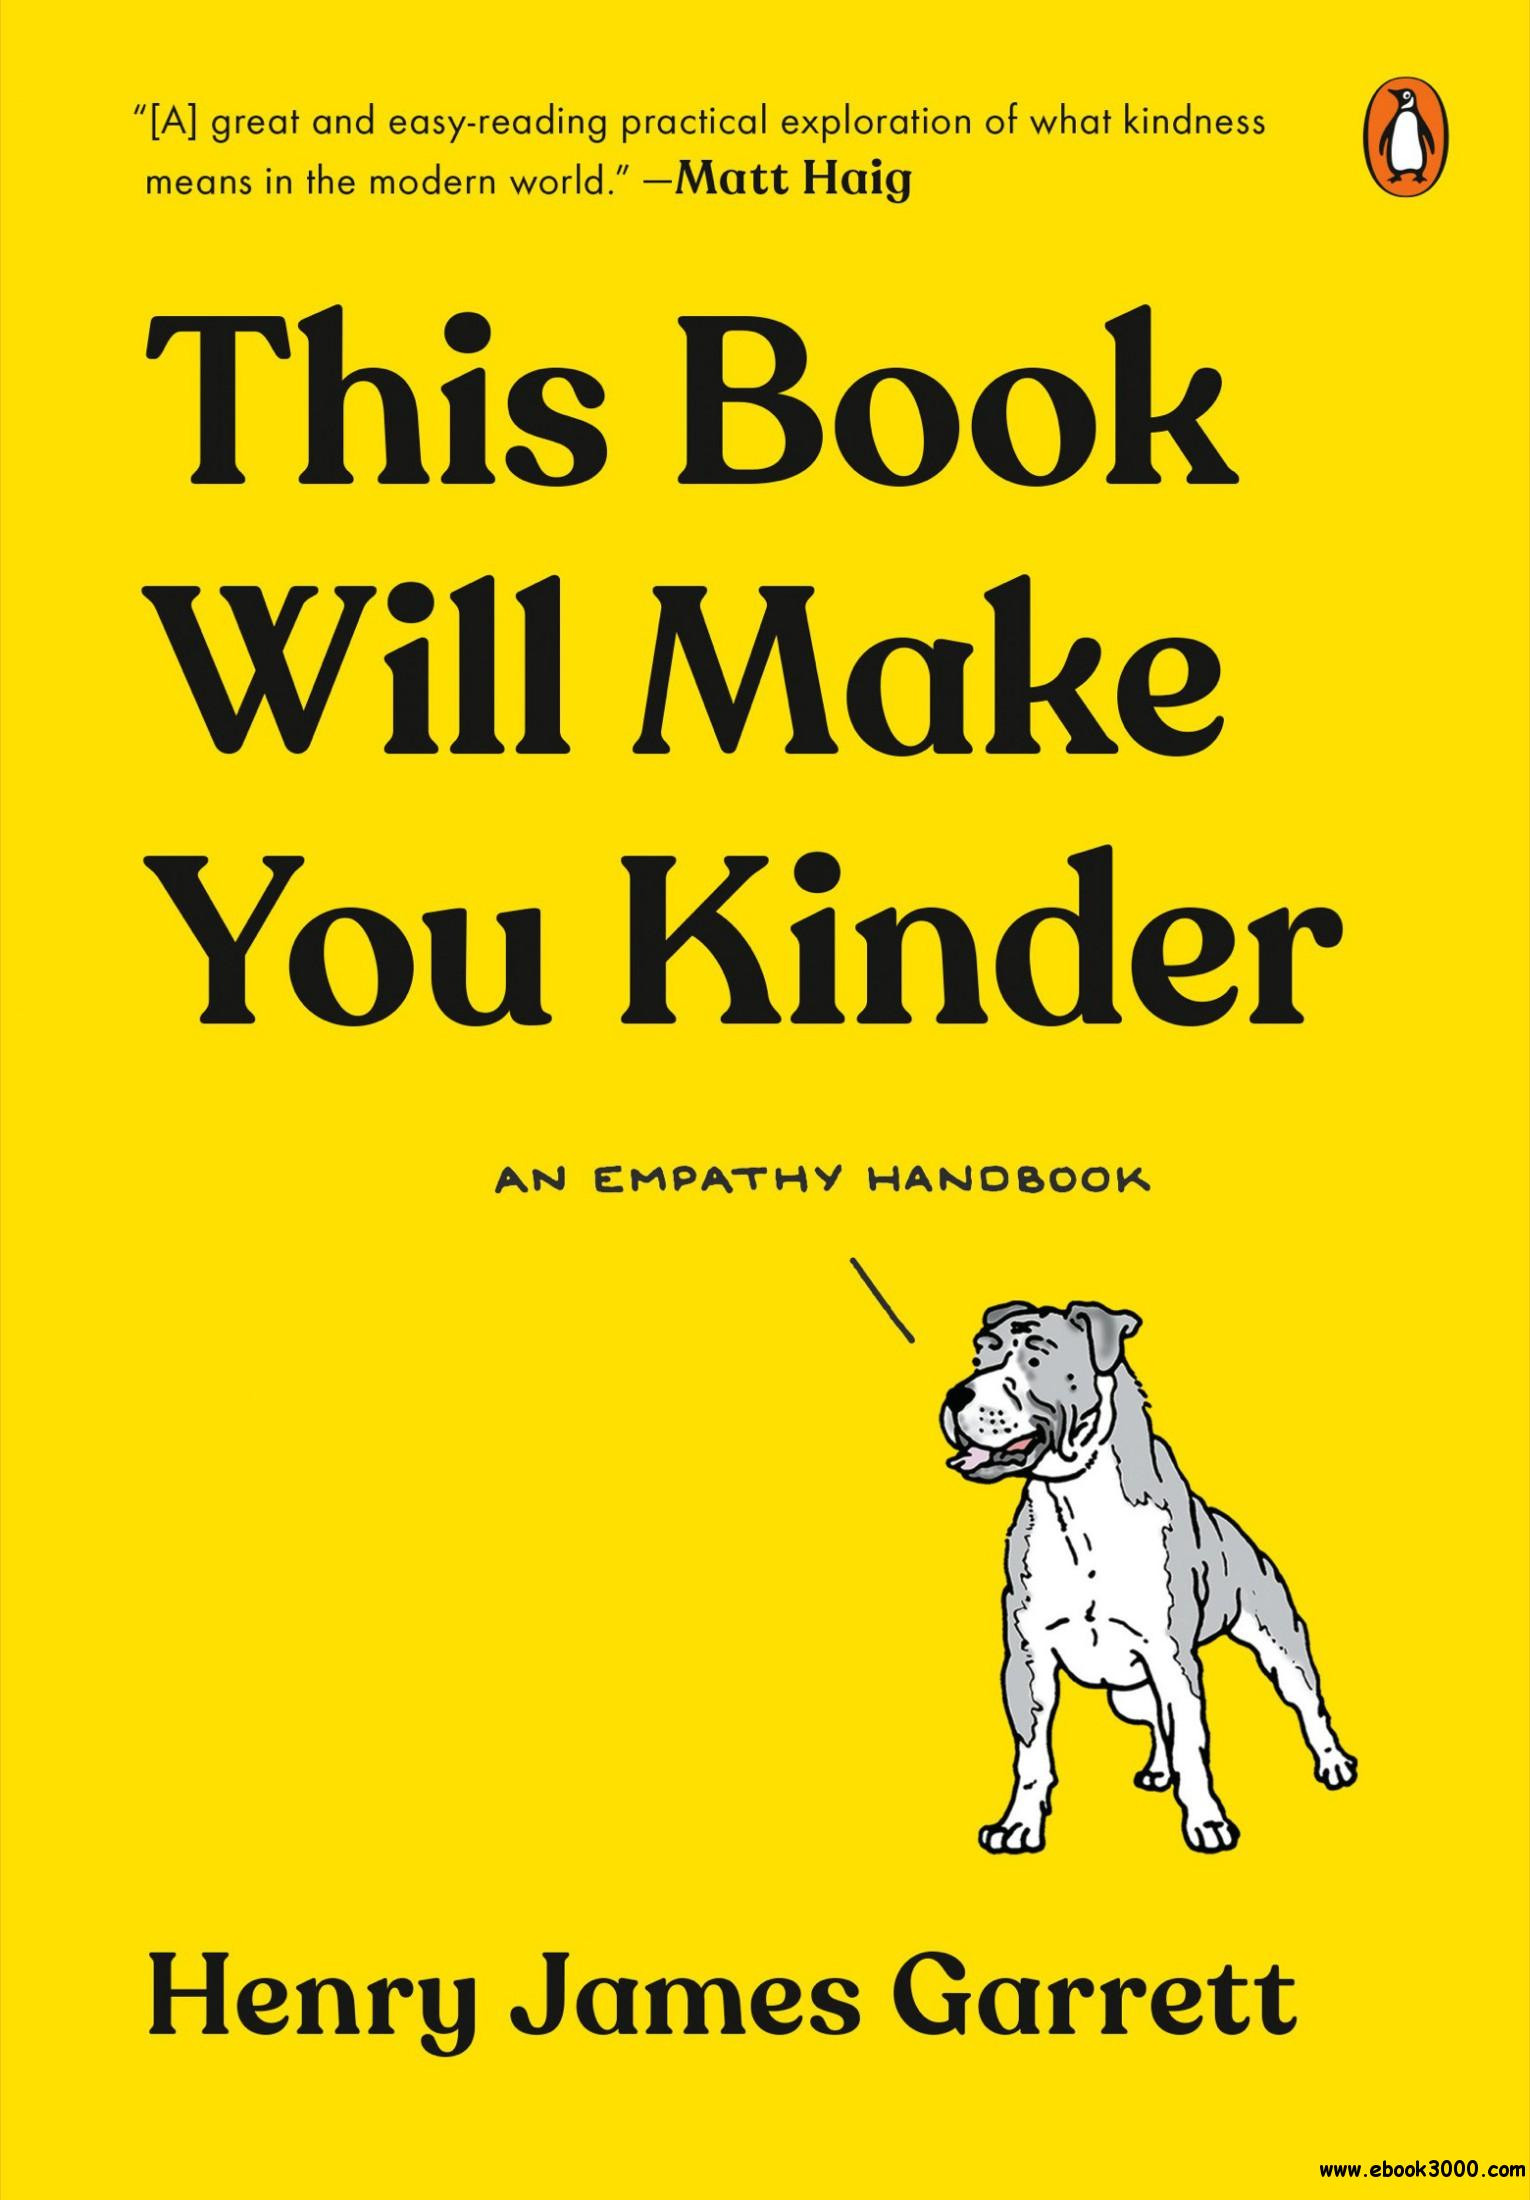 This Book Will Make You Kinder: An Empathy Handbook